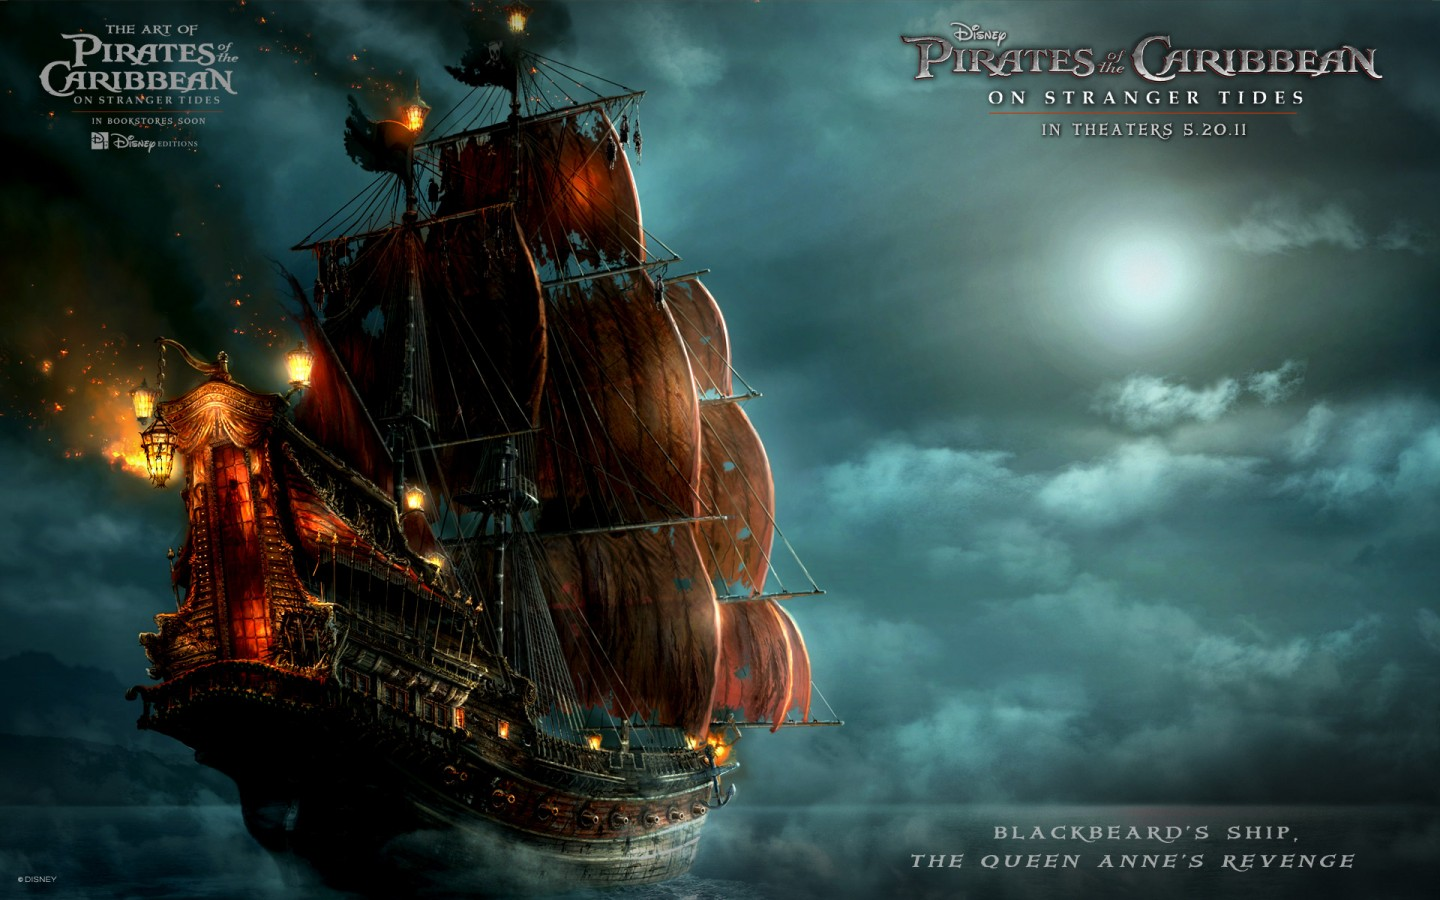 Abstract Iphone 5 Wallpaper Hd Blackbeard S Ship In Pirates Of The Caribbean 4 Wallpapers